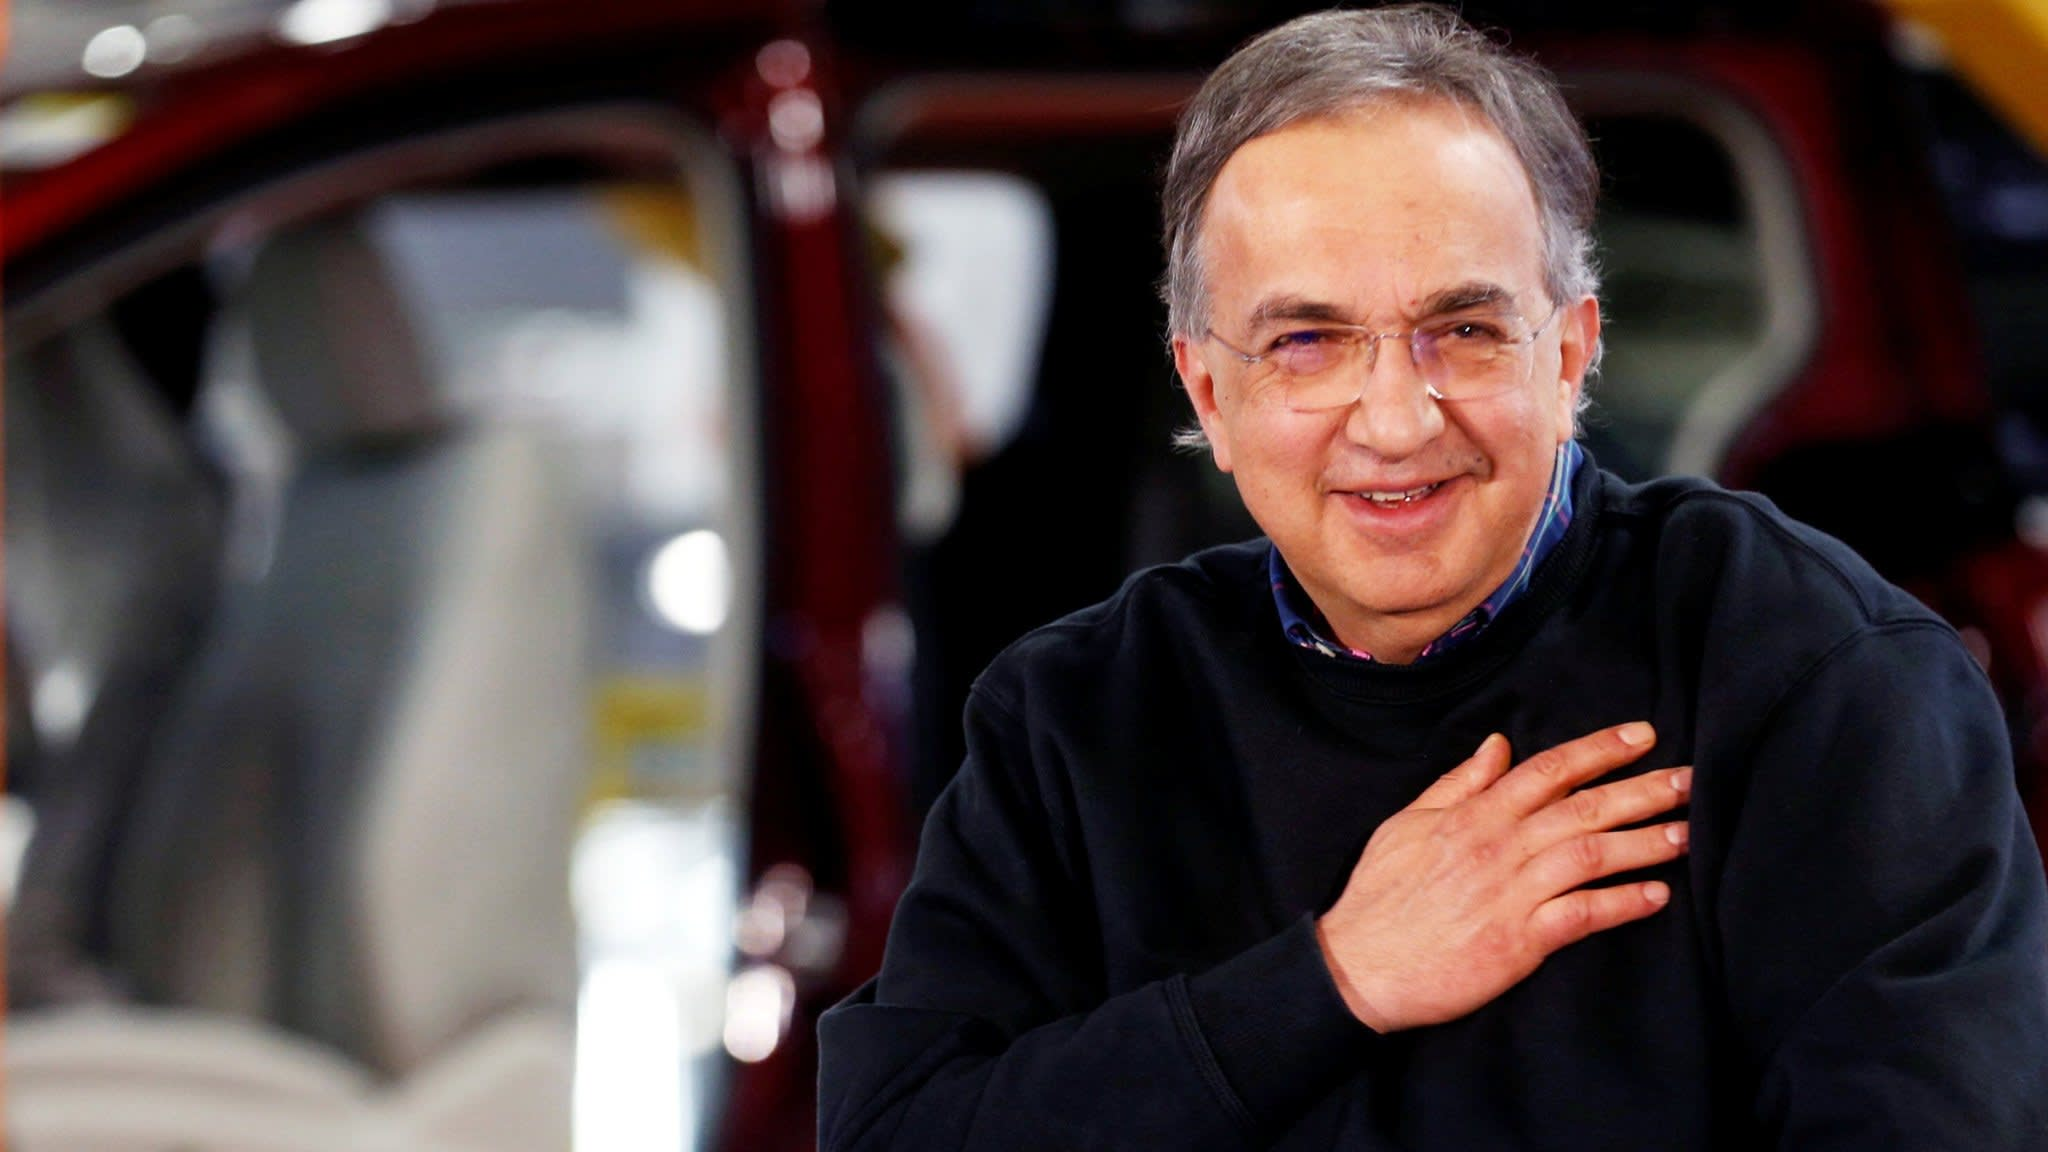 Fiat Chrysler, CNH and Ferrari meet to replace Marchionne